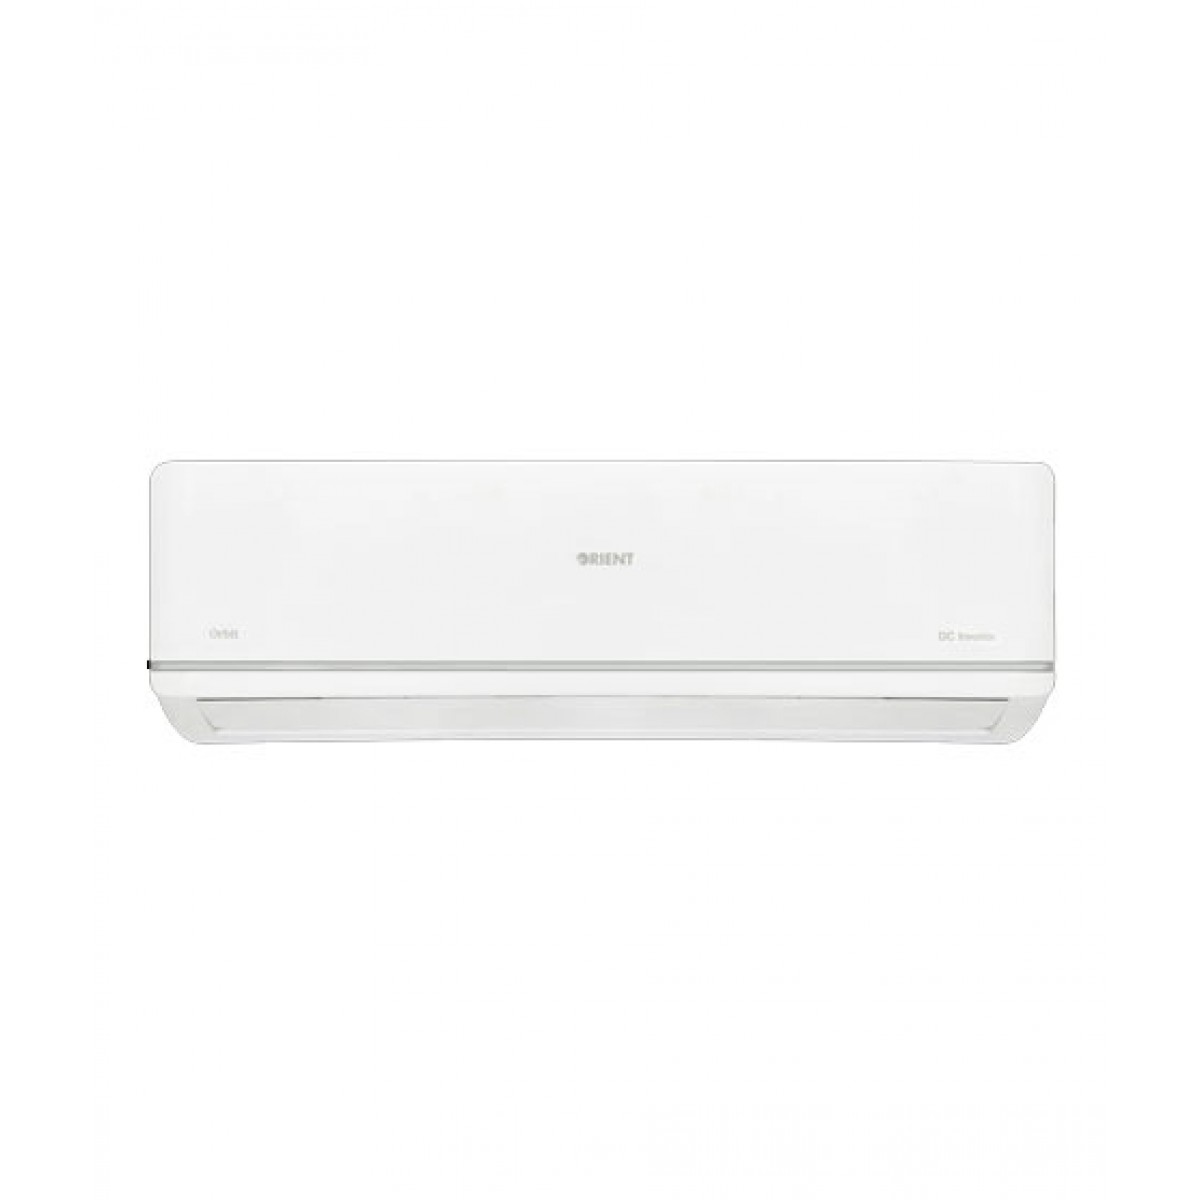 Orient Orbit DC Inverter Split Air Conditioner 1.5 Ton Gold Fin (Orbit-18G)